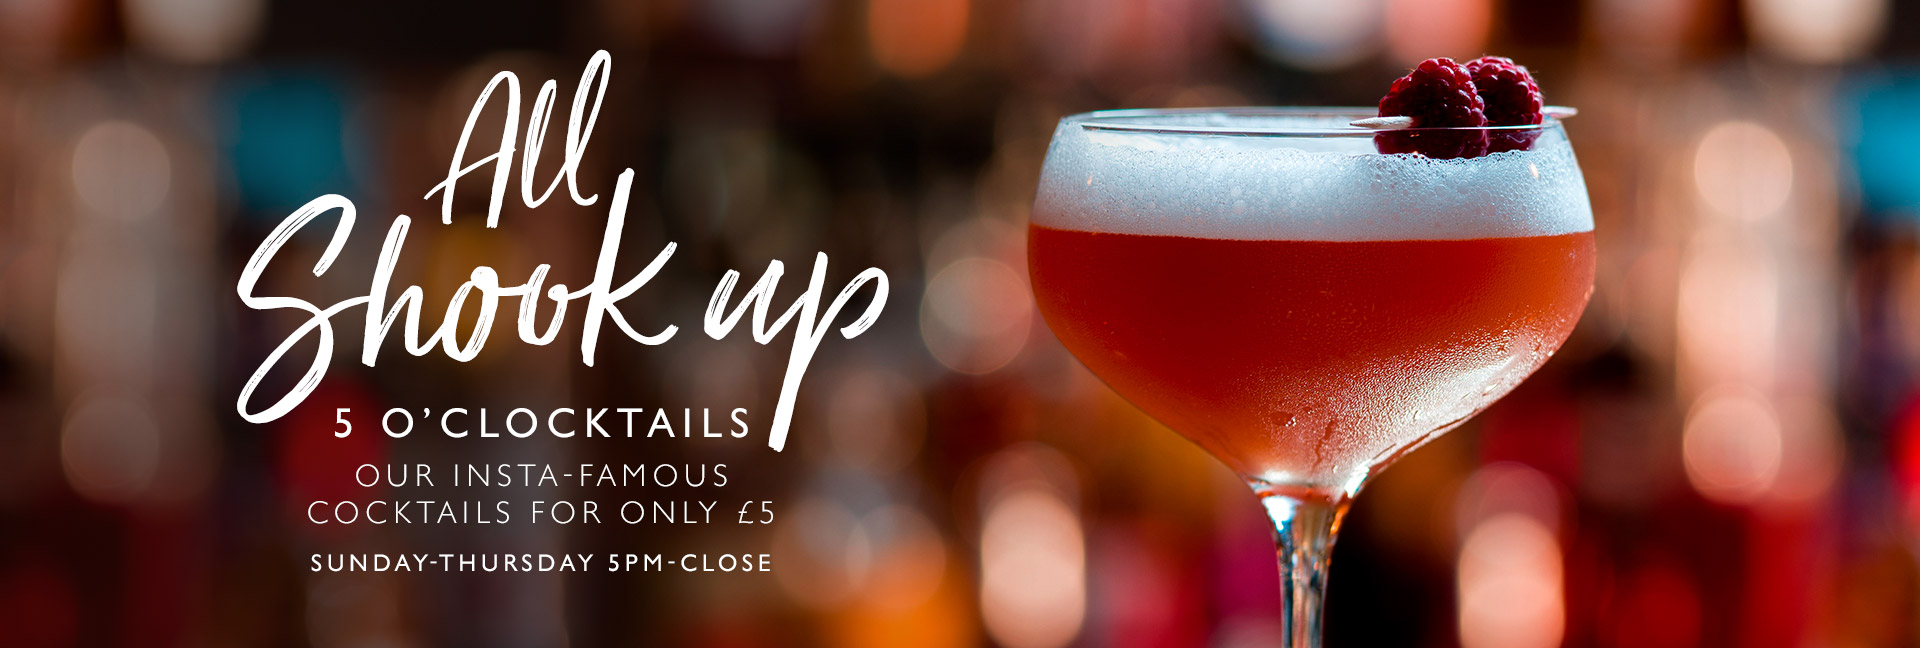 5 O'clocktails at All Bar One York - Book now